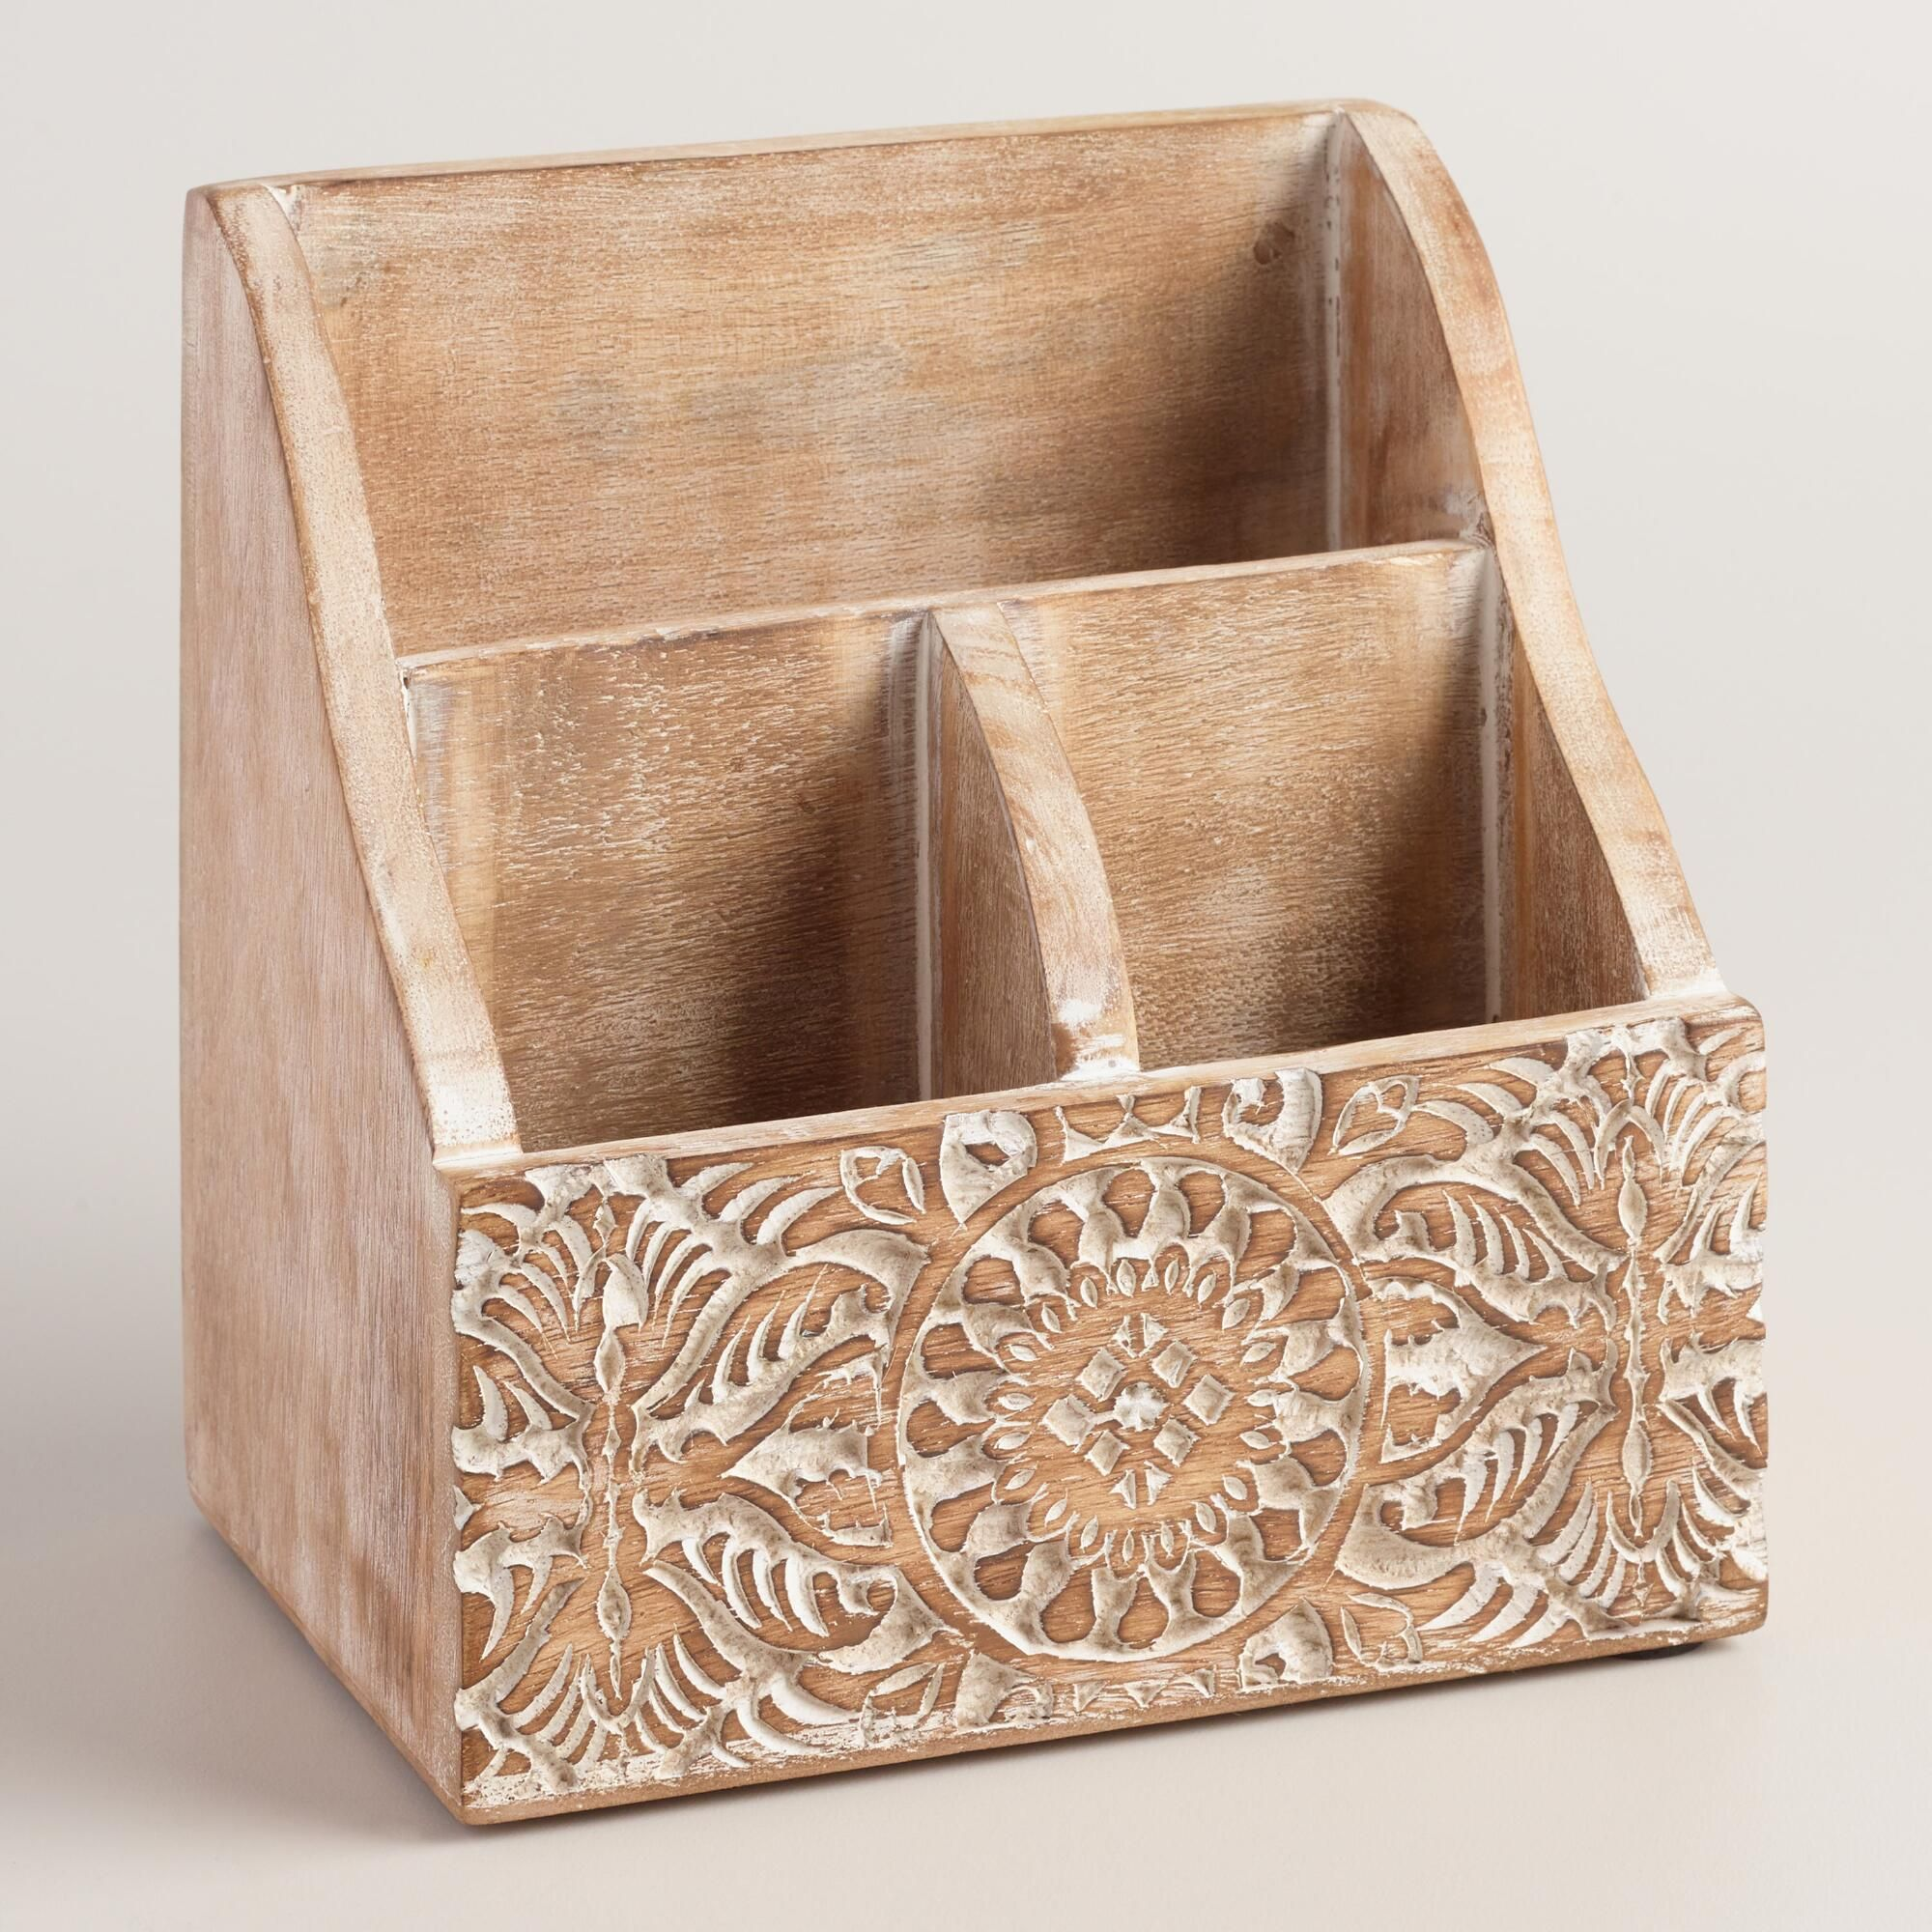 Elevate Everyday Office Supplies With Our Three Compartment Organizer Handcrafted In India With An In Wooden Desk Organizer Desk Organization Hand Carved Wood